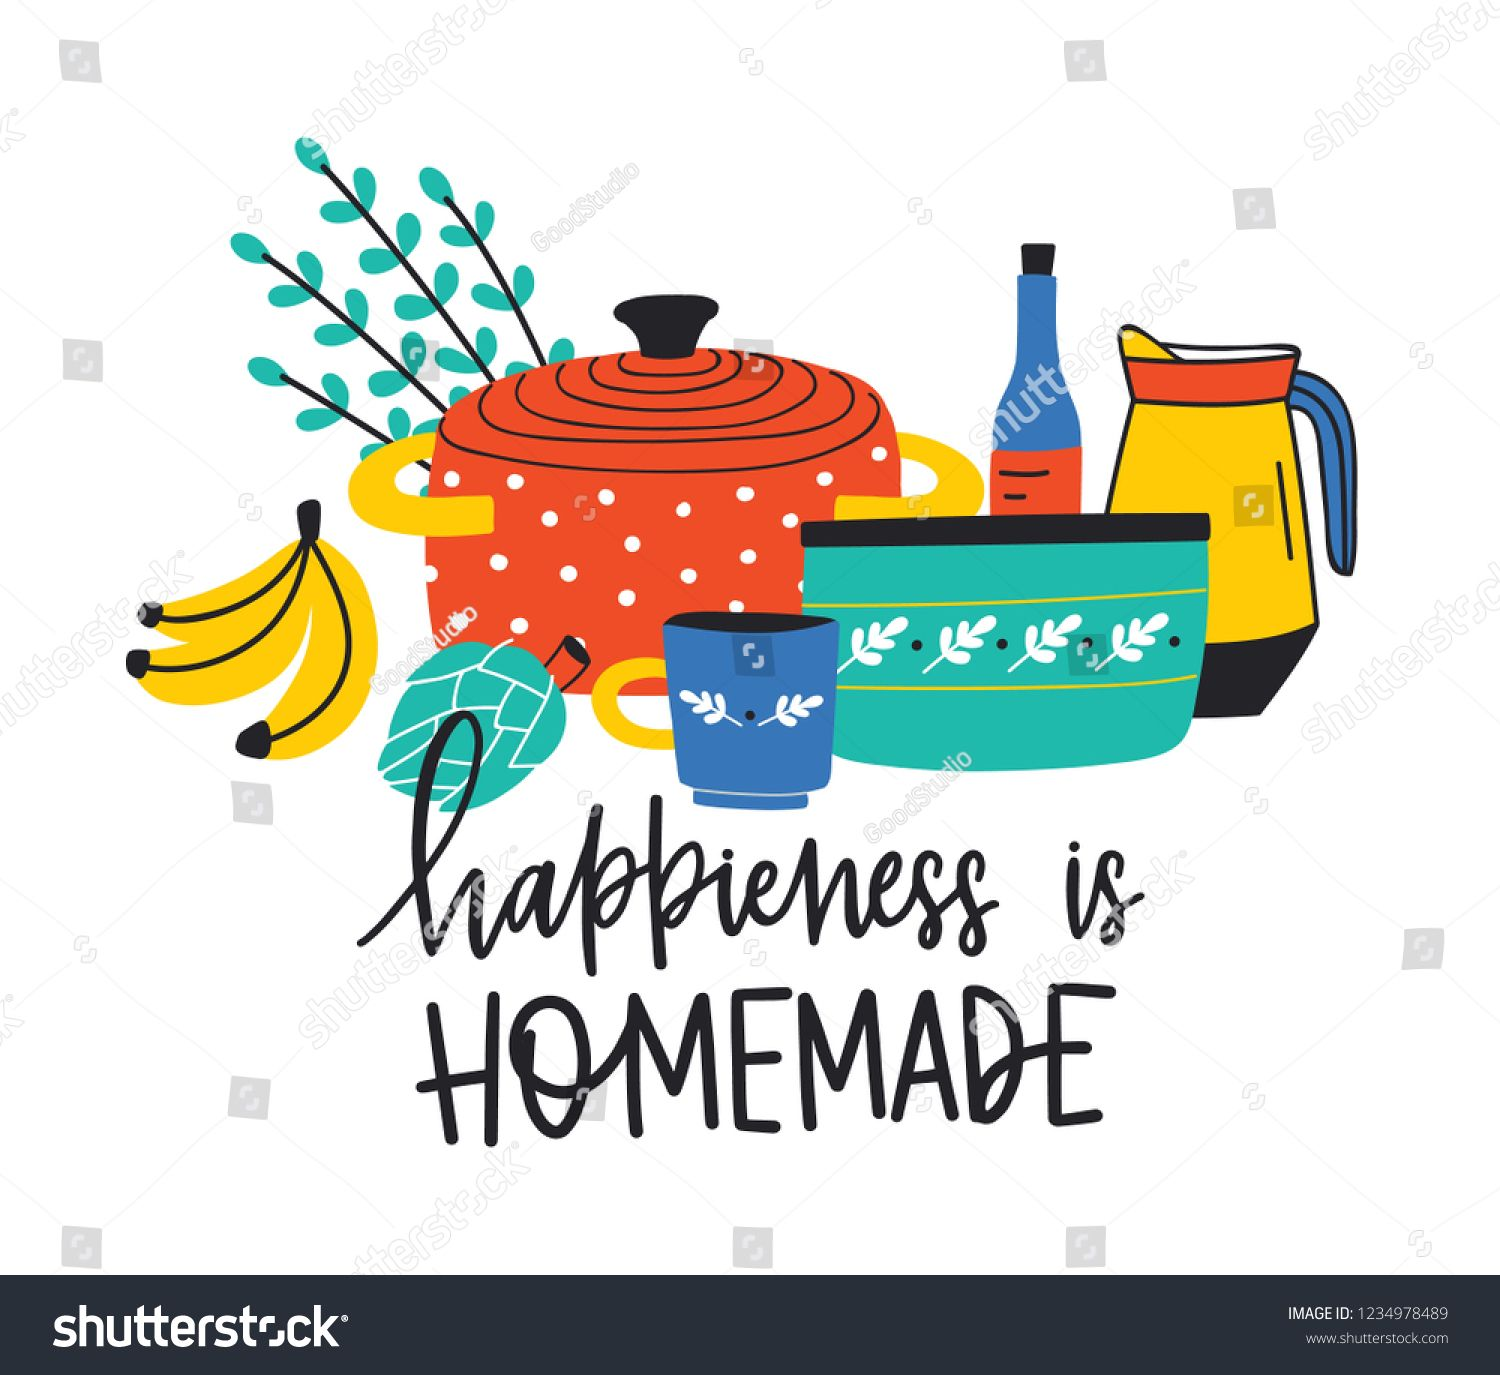 Banner Template With Kitchenware Or Kitchen Utensils For Cooking And Happiness Is Homemade Homemade Banners Birthday Banner Template Printable Banner Template